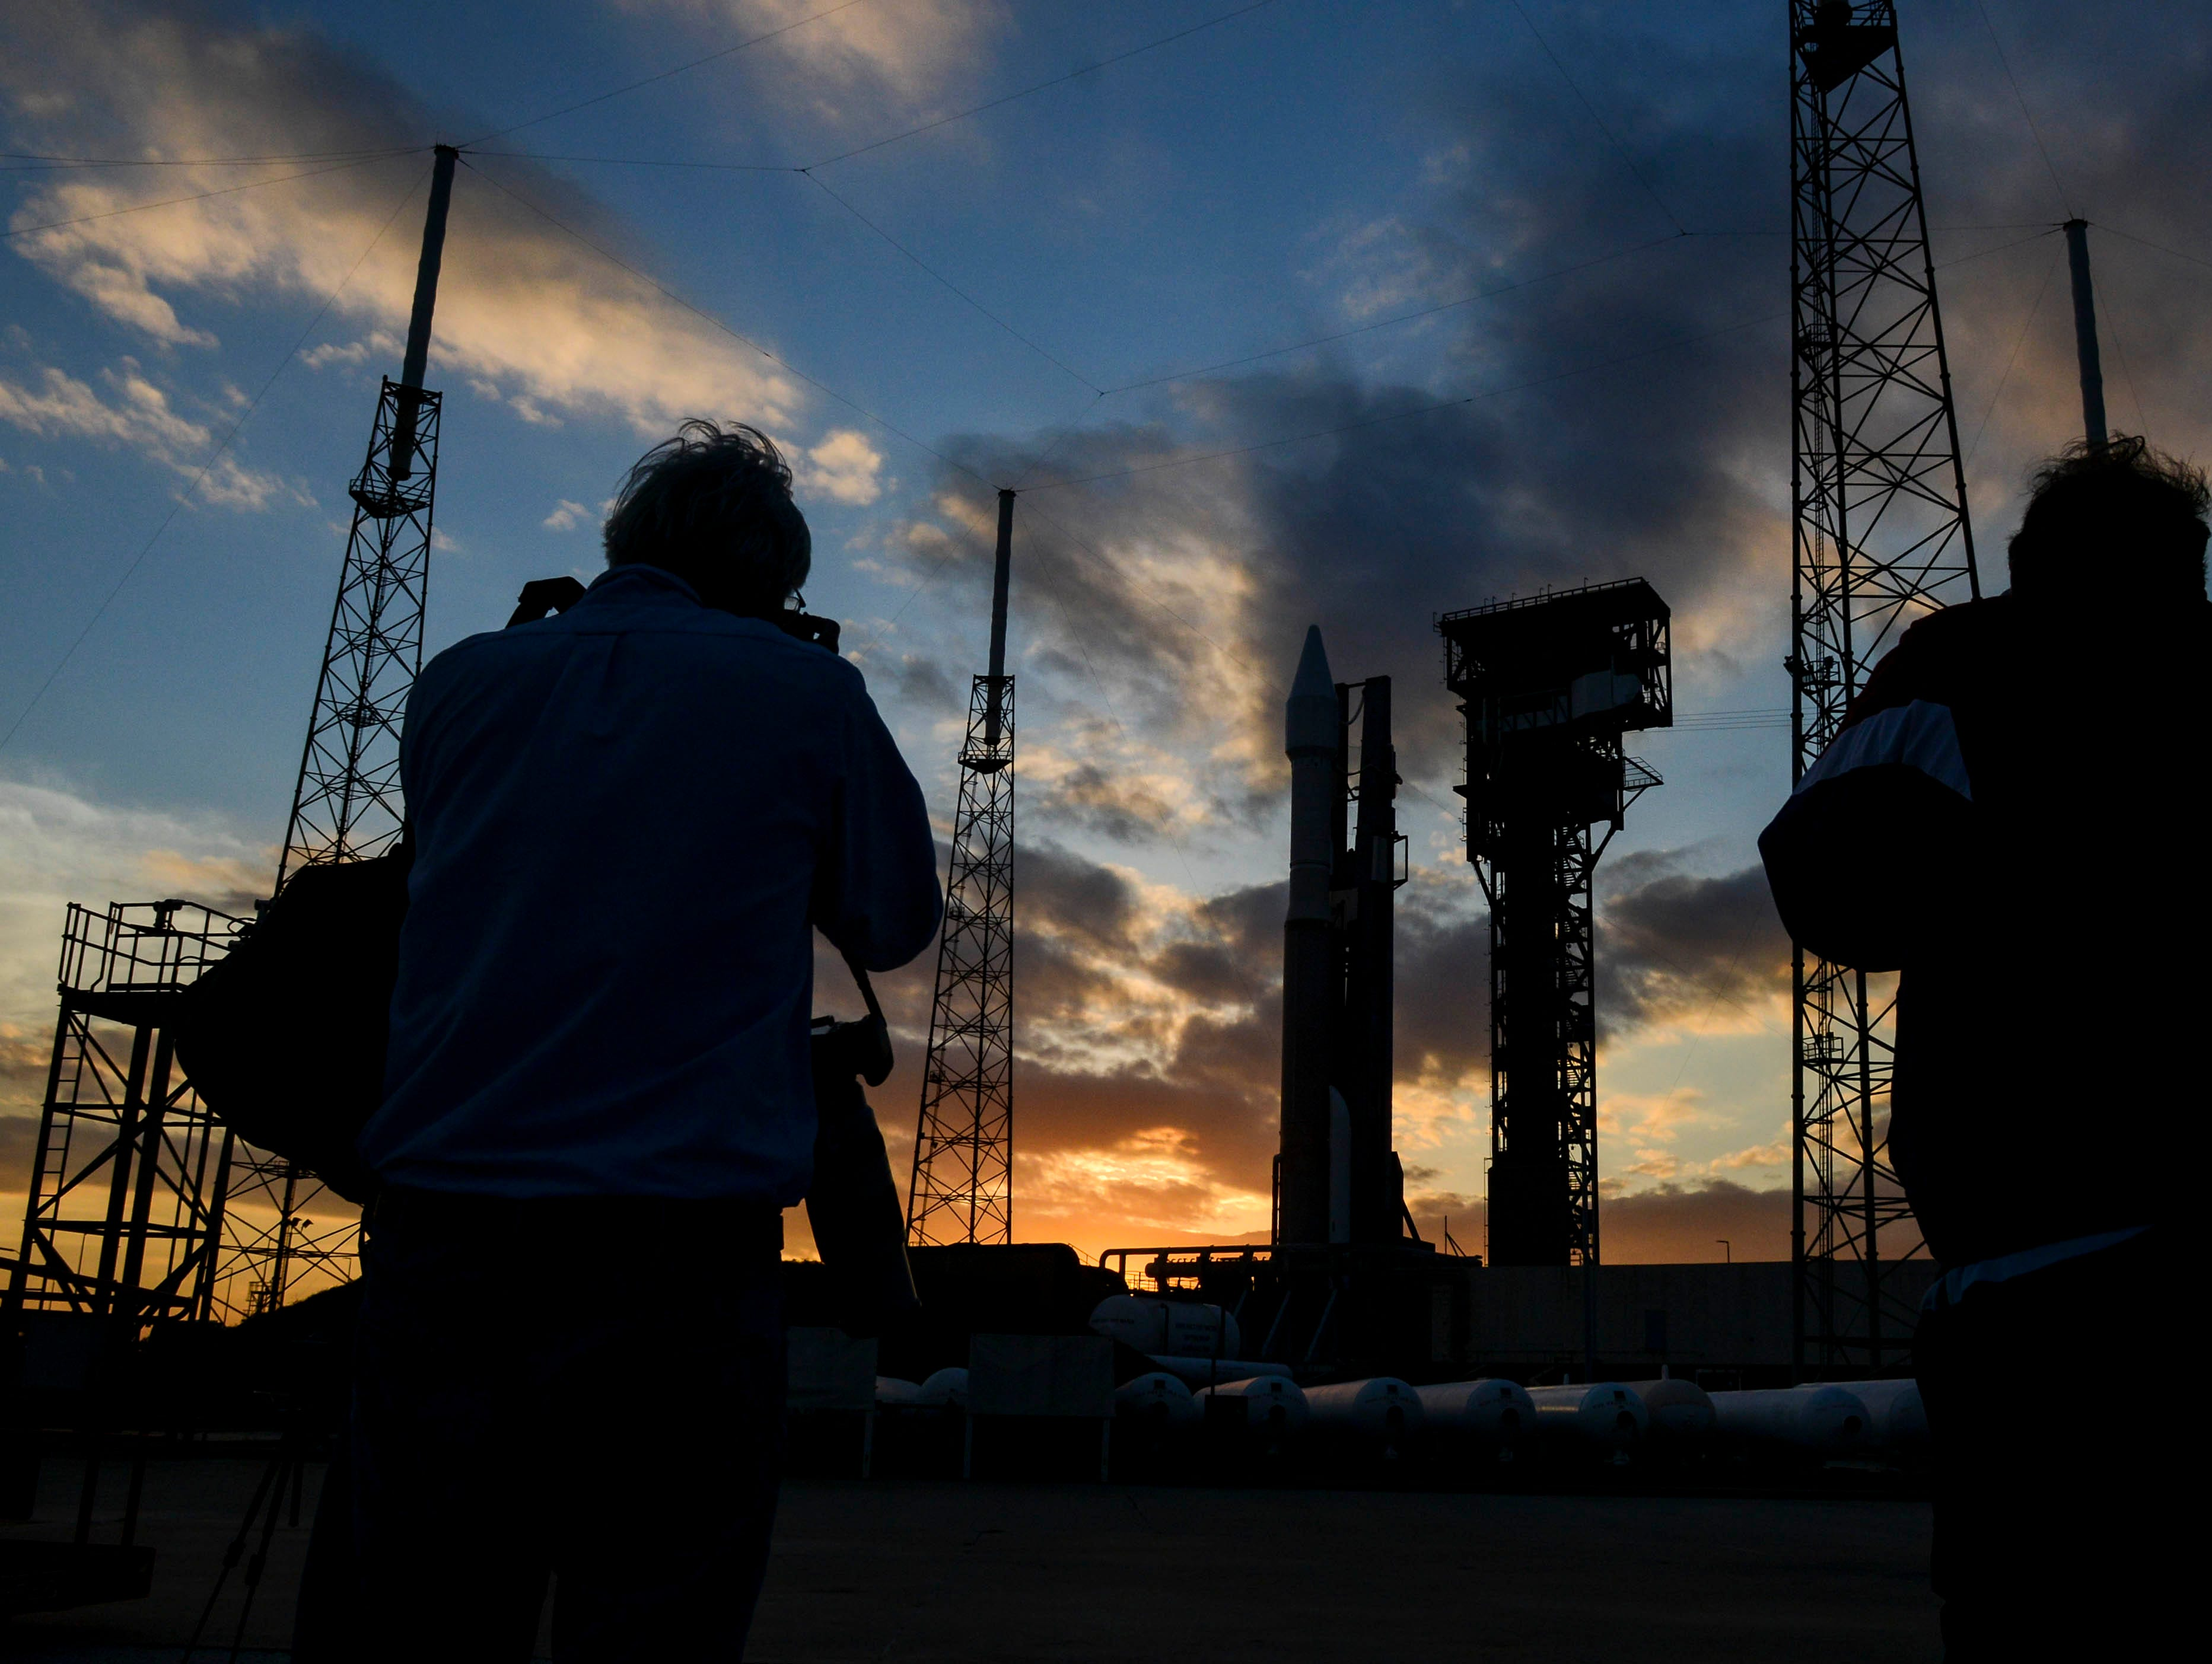 An Atlas V rocket sits on the pad at Launch Complex 41 Wednesday evening as the sun goes down.  The is scheduled to lift off Thursday evening carrying a missile warning satellite for the US Air Force.